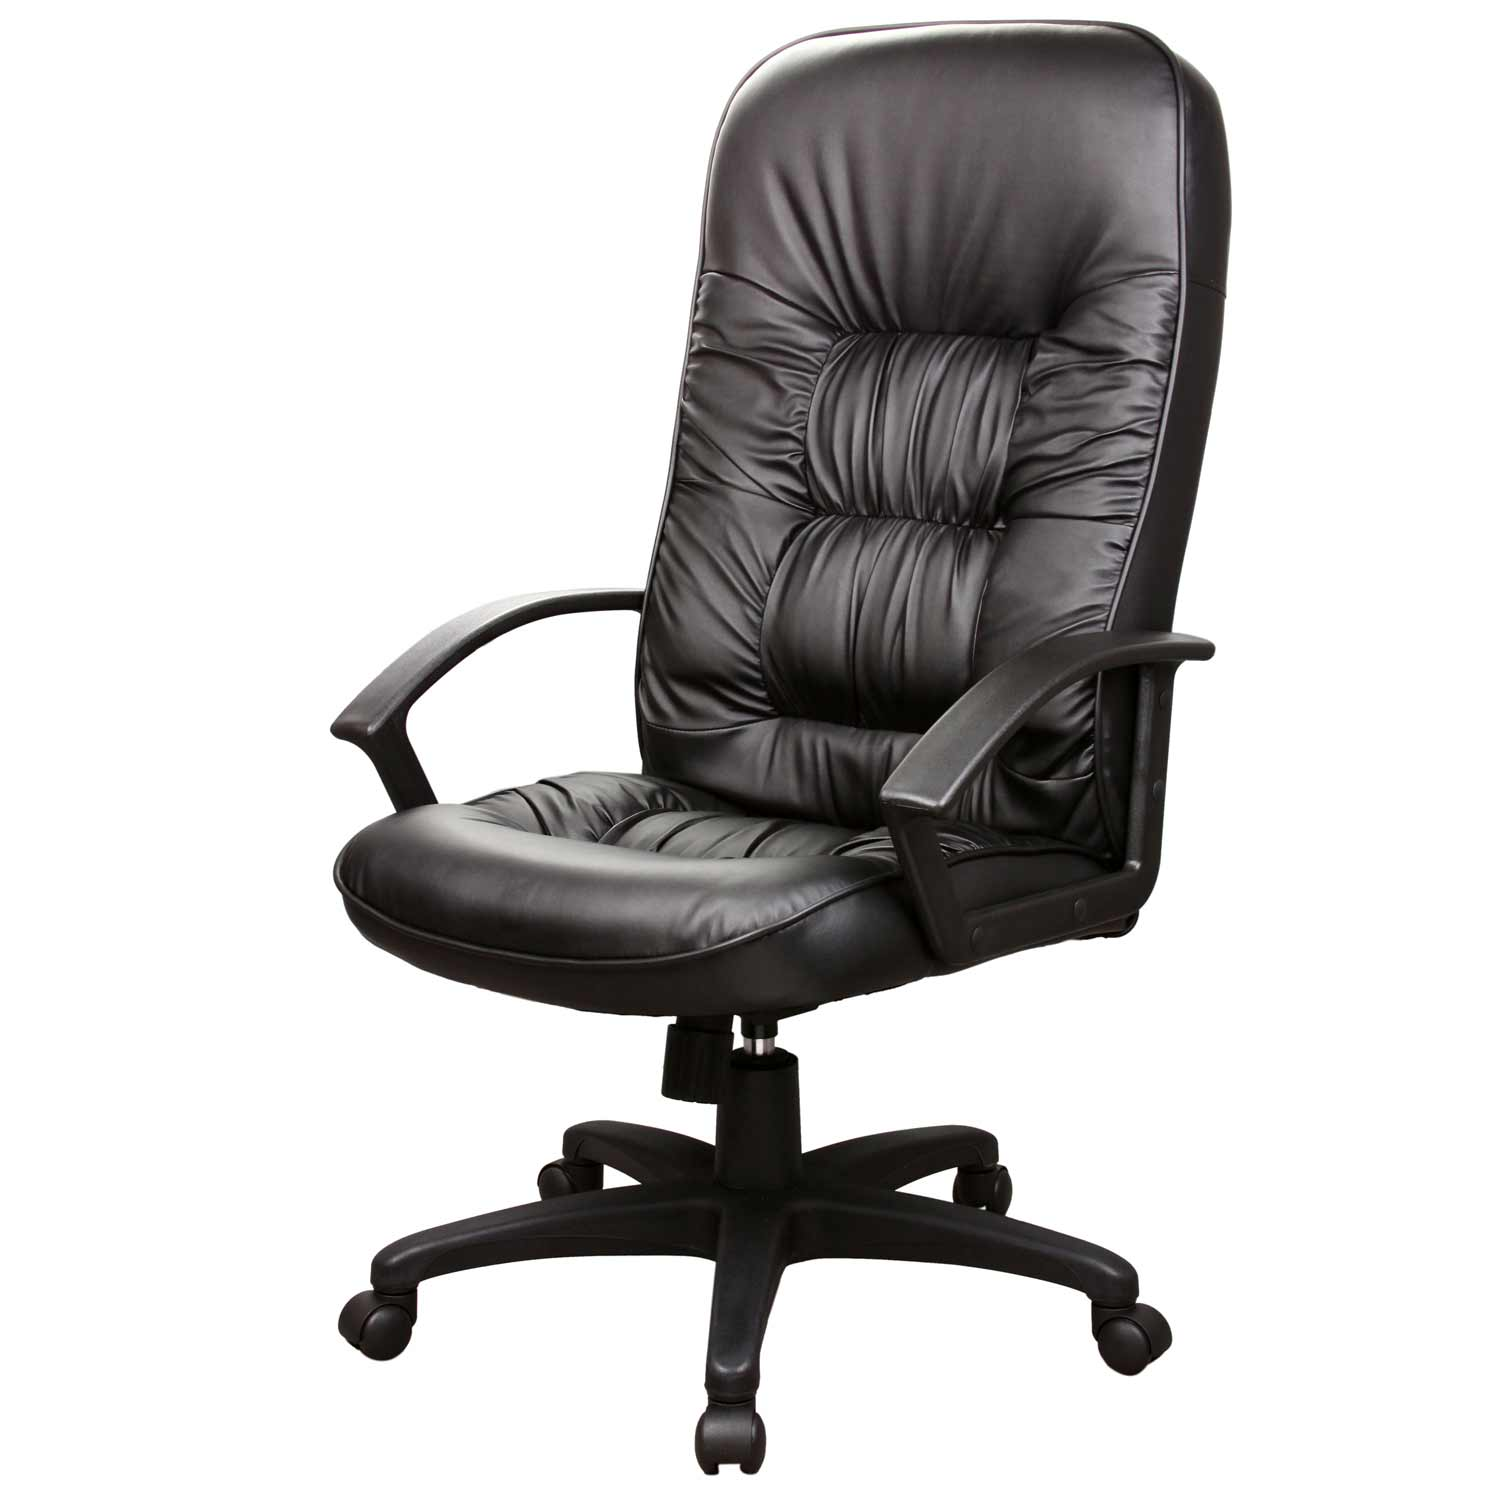 recaro office chair green leather chairs computer furniture